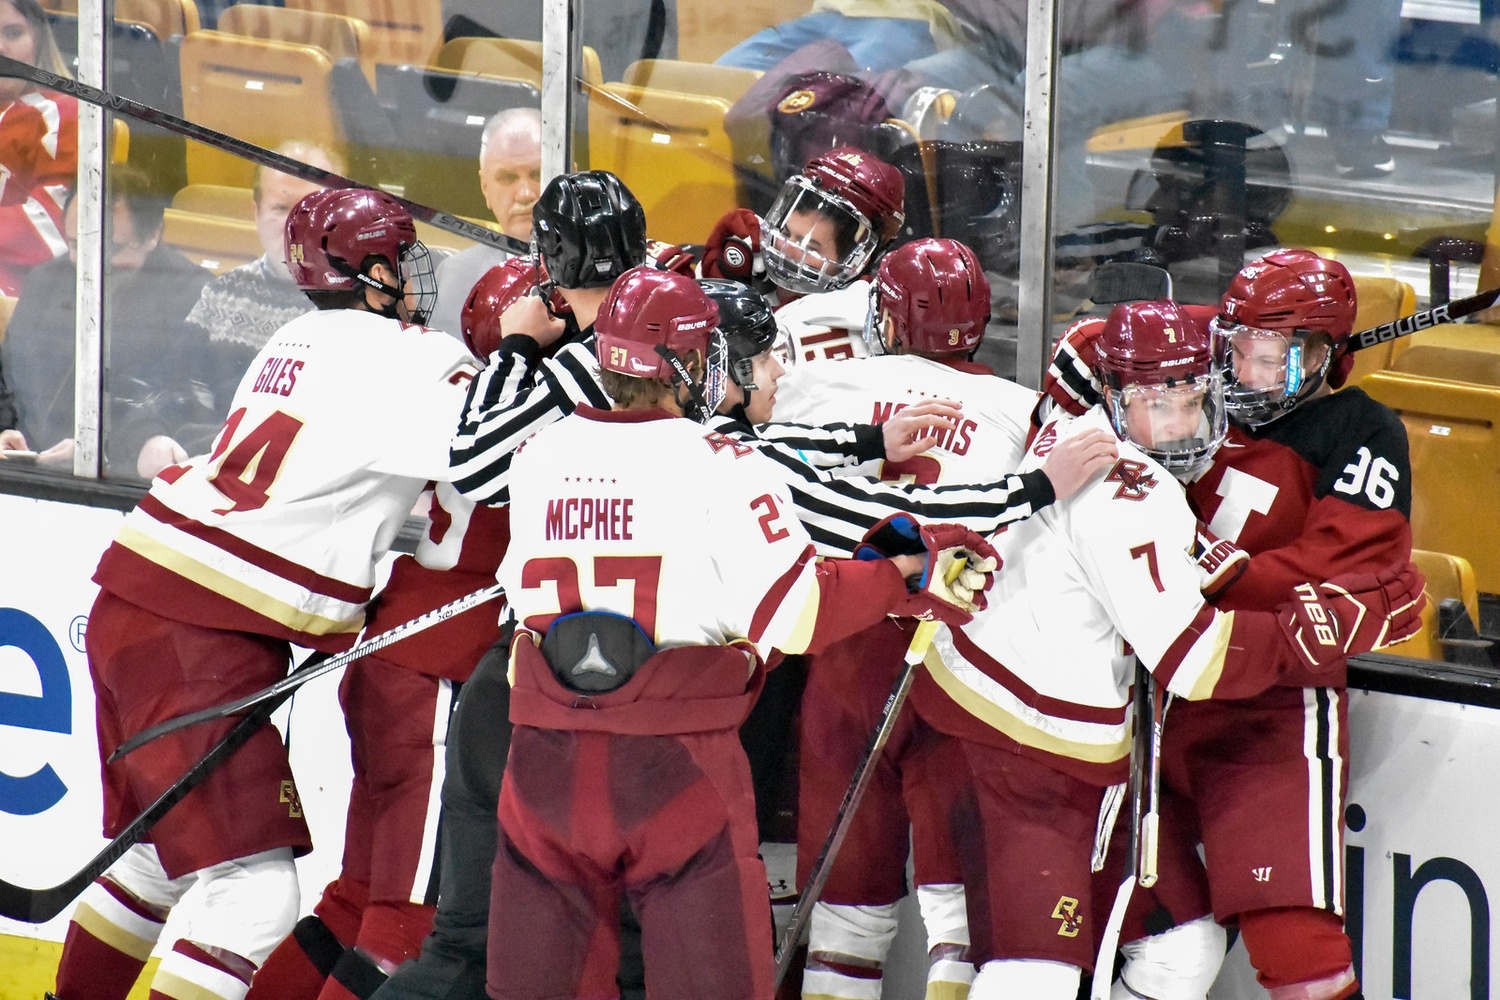 The intensity of the Beanpot is always high, as storied programs with long histories make for fierce competitors.